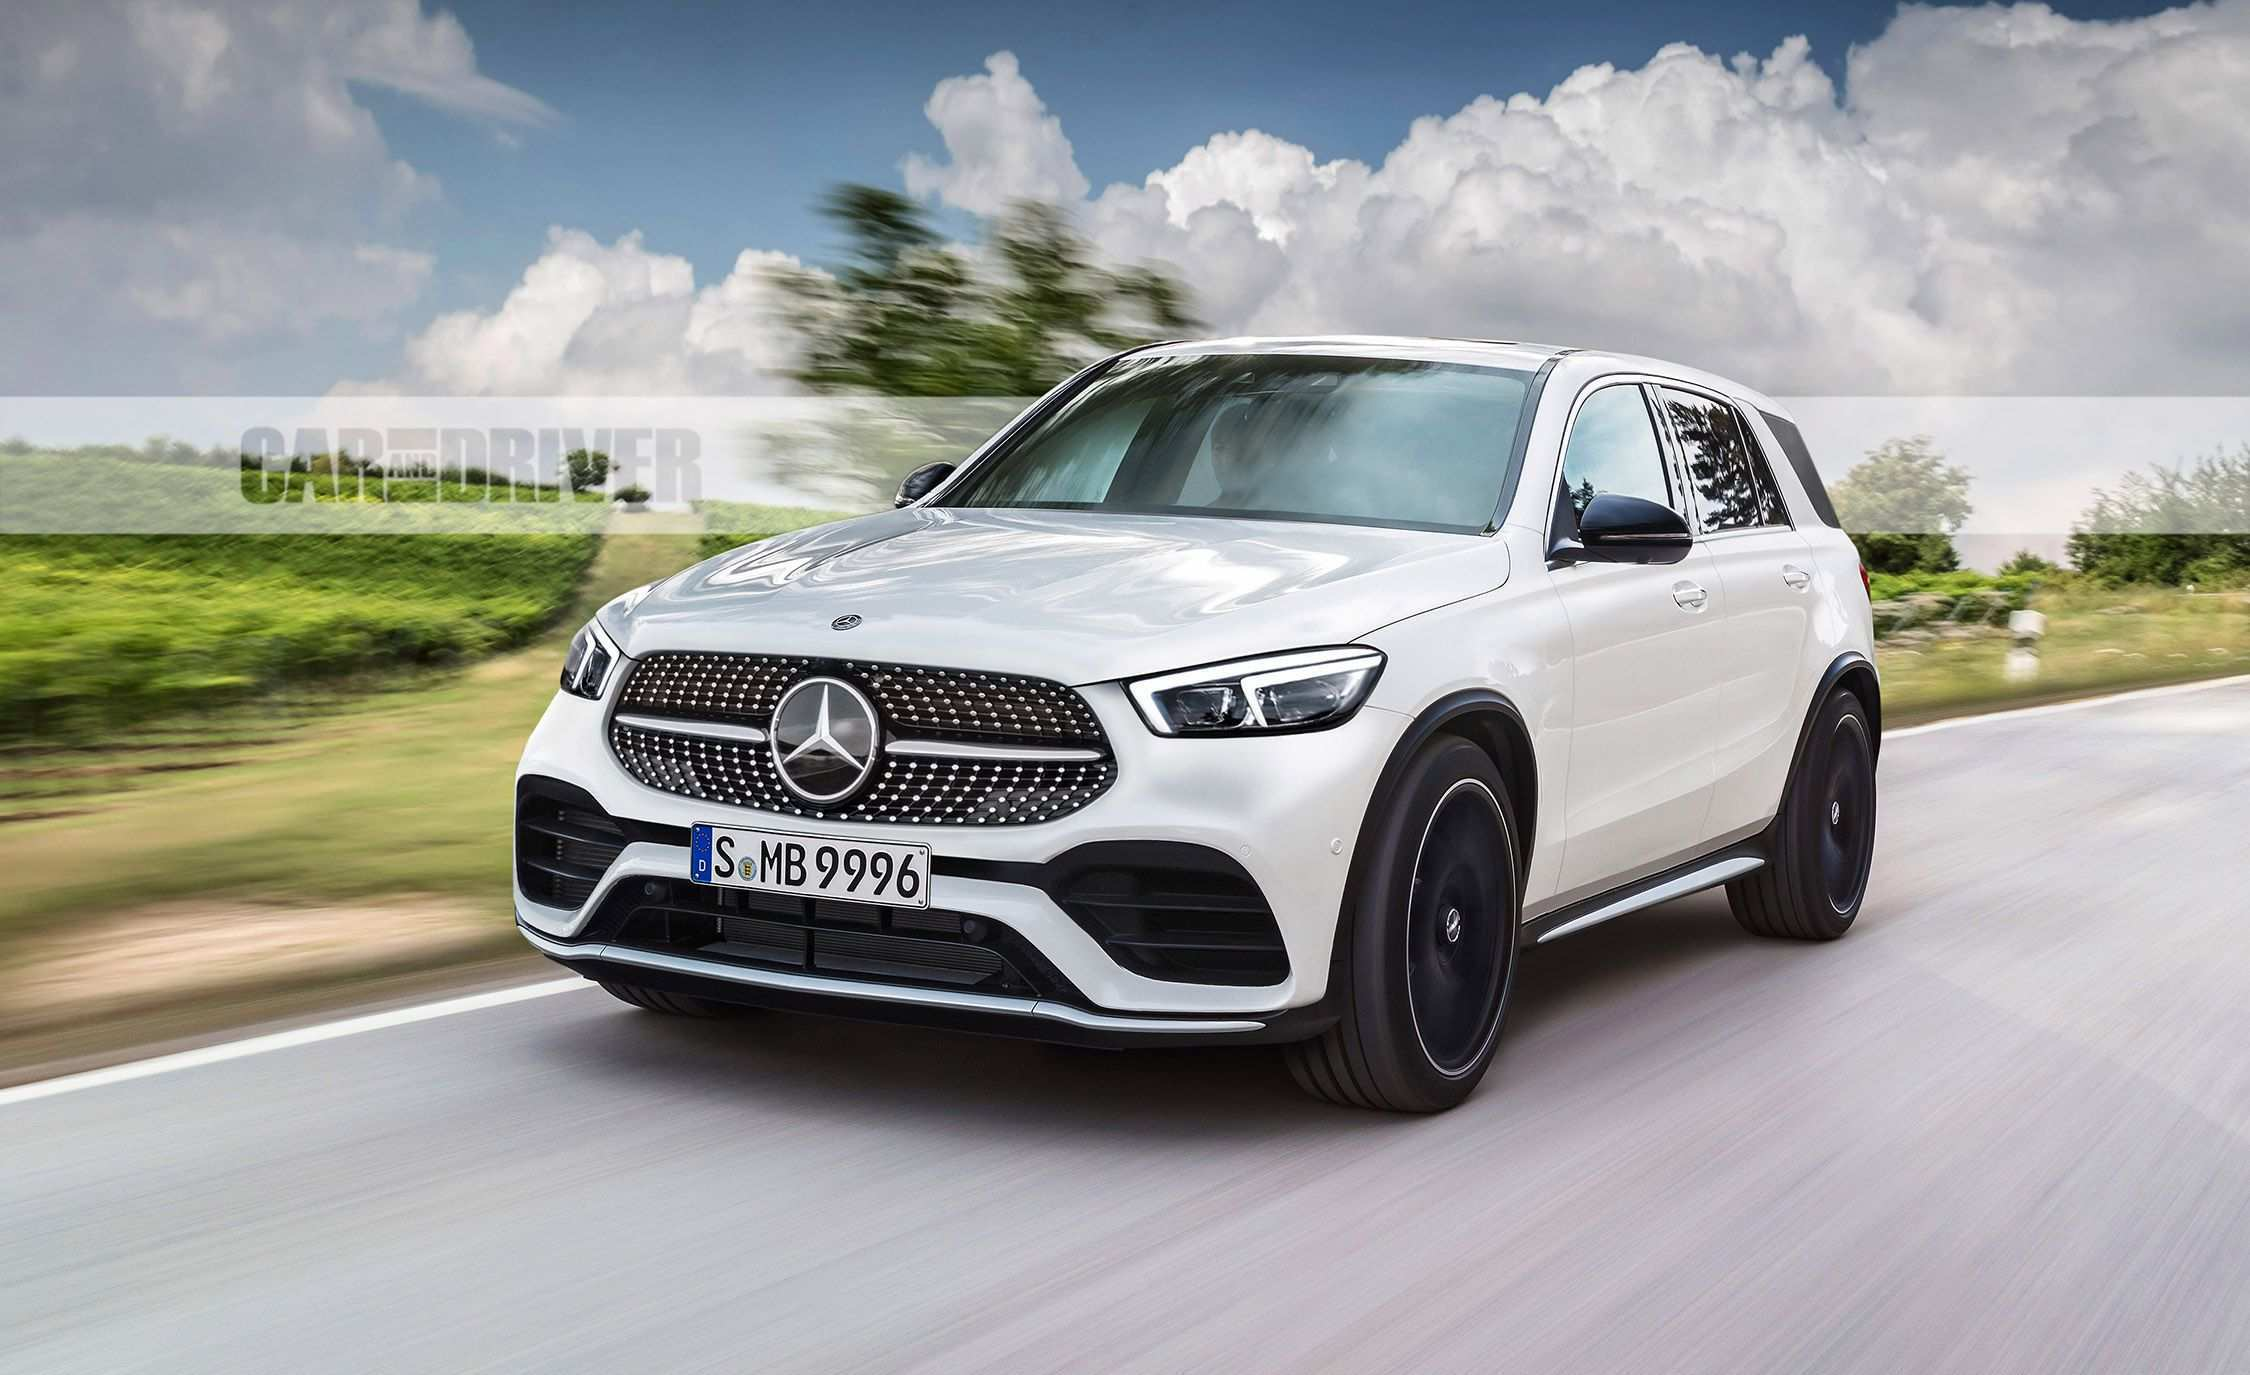 67 New Gle Mercedes 2019 Pictures by Gle Mercedes 2019